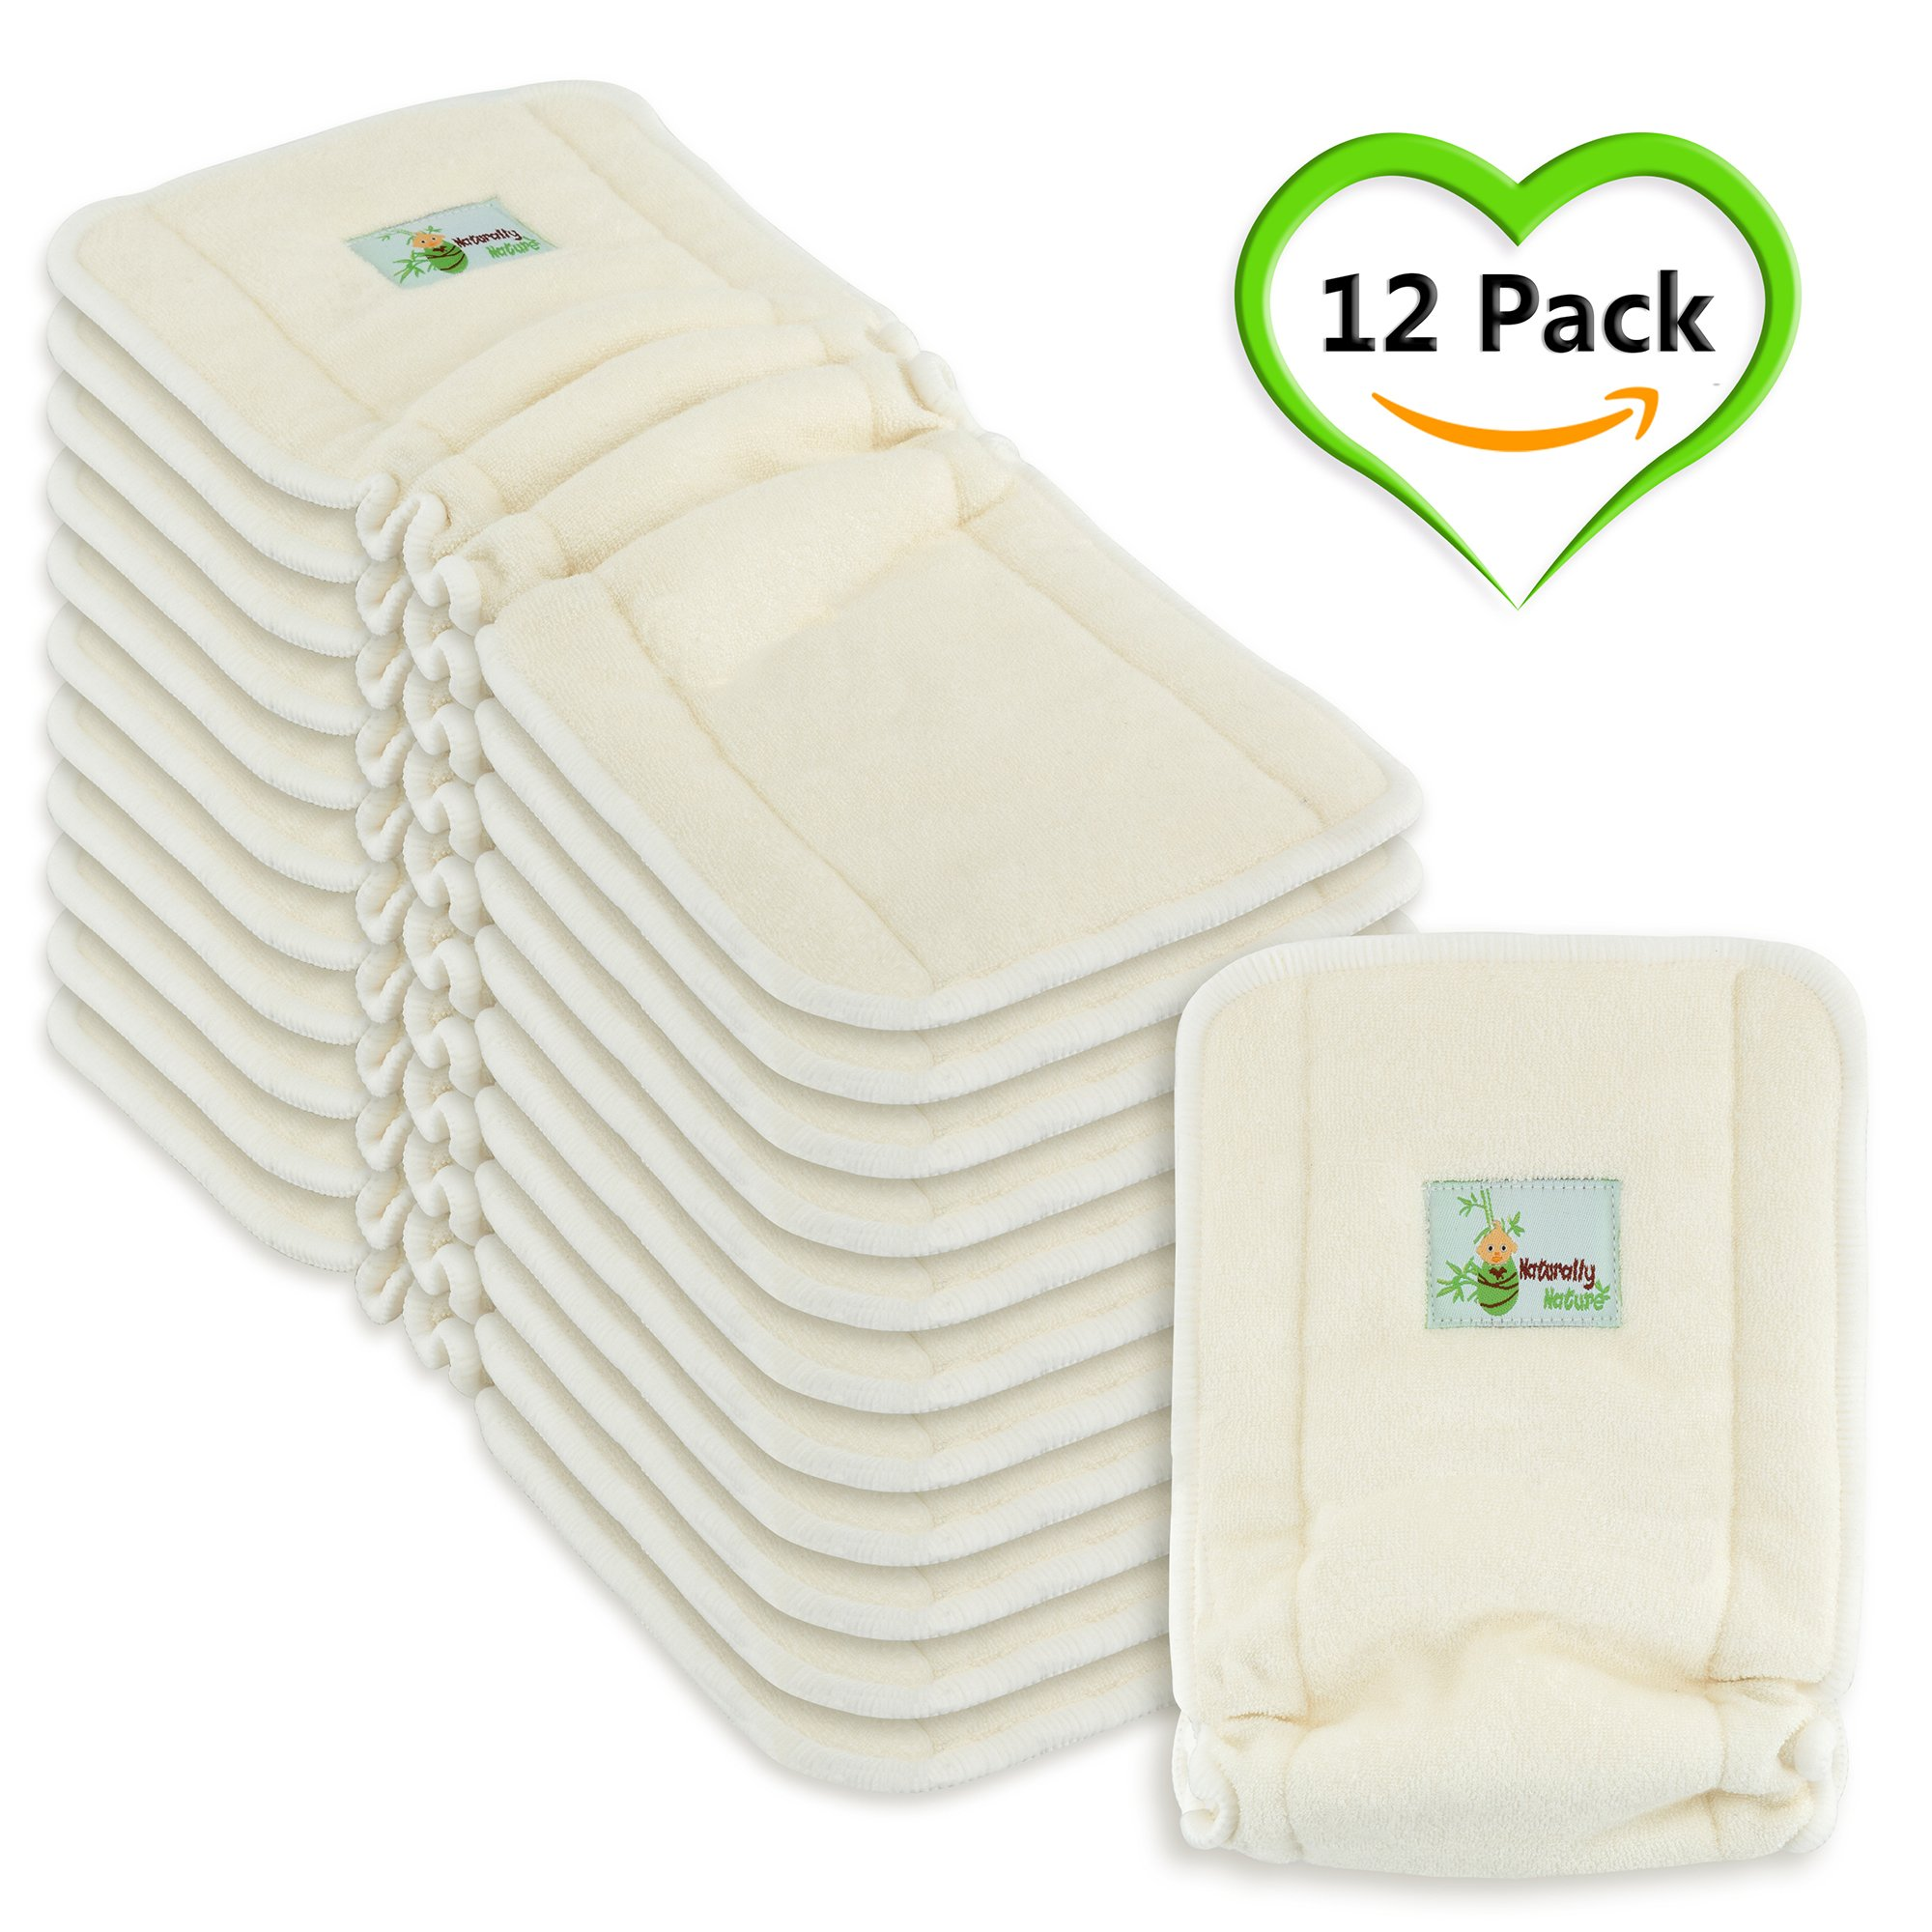 Naturally Natures 4 Layer Cloth Diaper - Inserts - with Gussetts Bamboo  Reusable Liners for Cloth